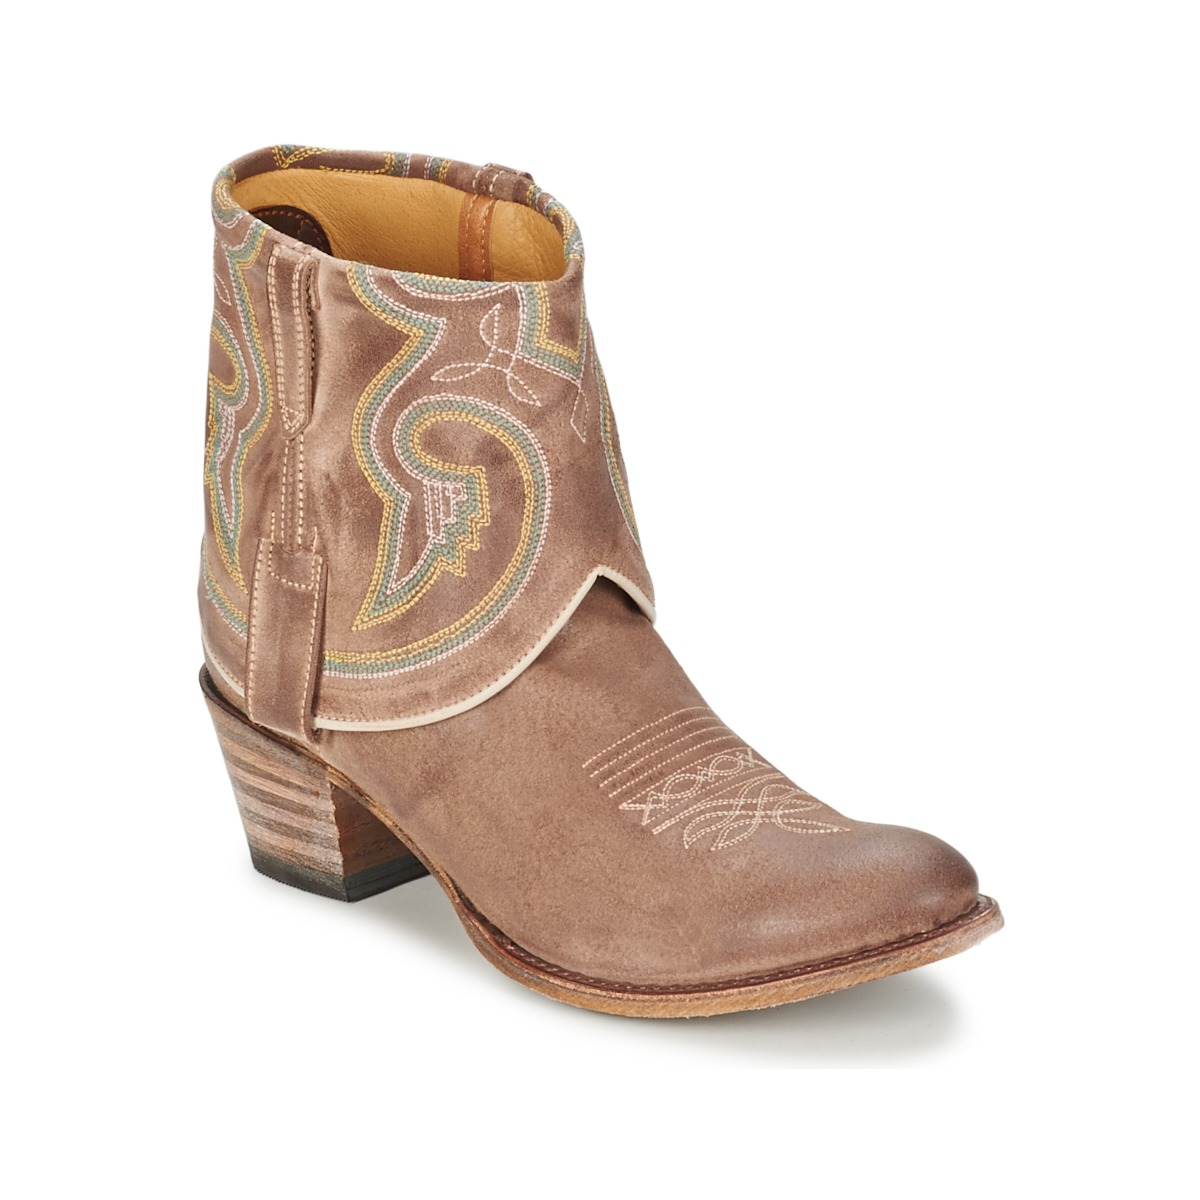 Sendra boots 11011 TAUPE